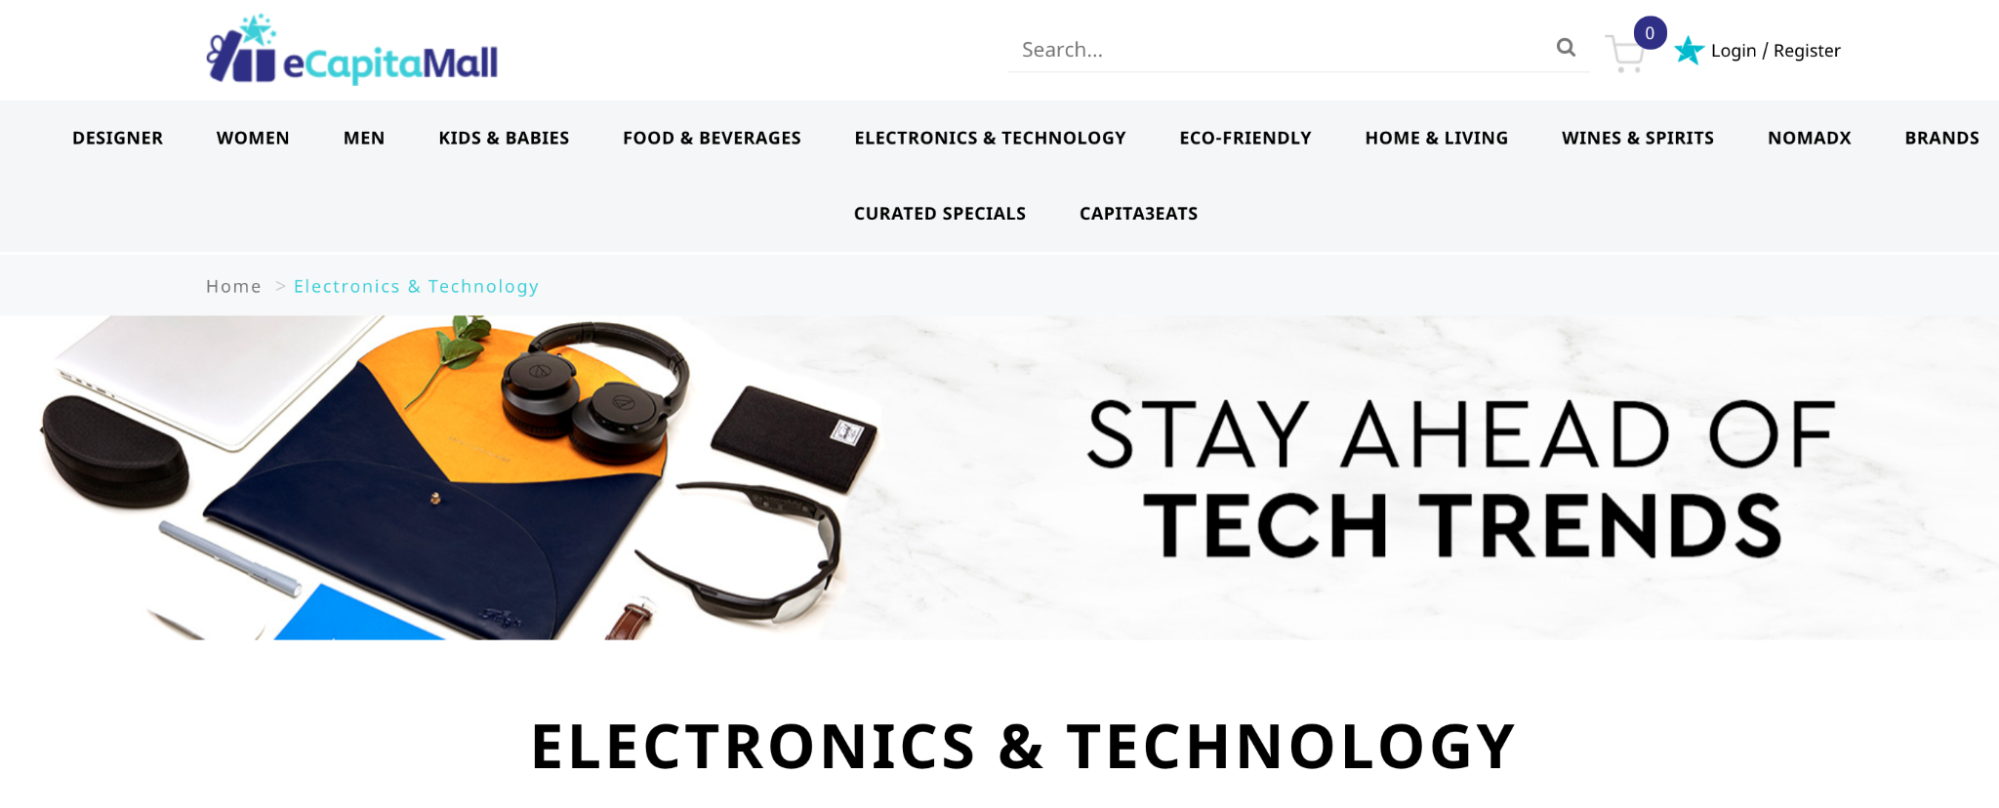 Tech & electronics promos CapitaLand Mall Father's Day Deals Singapore 2021